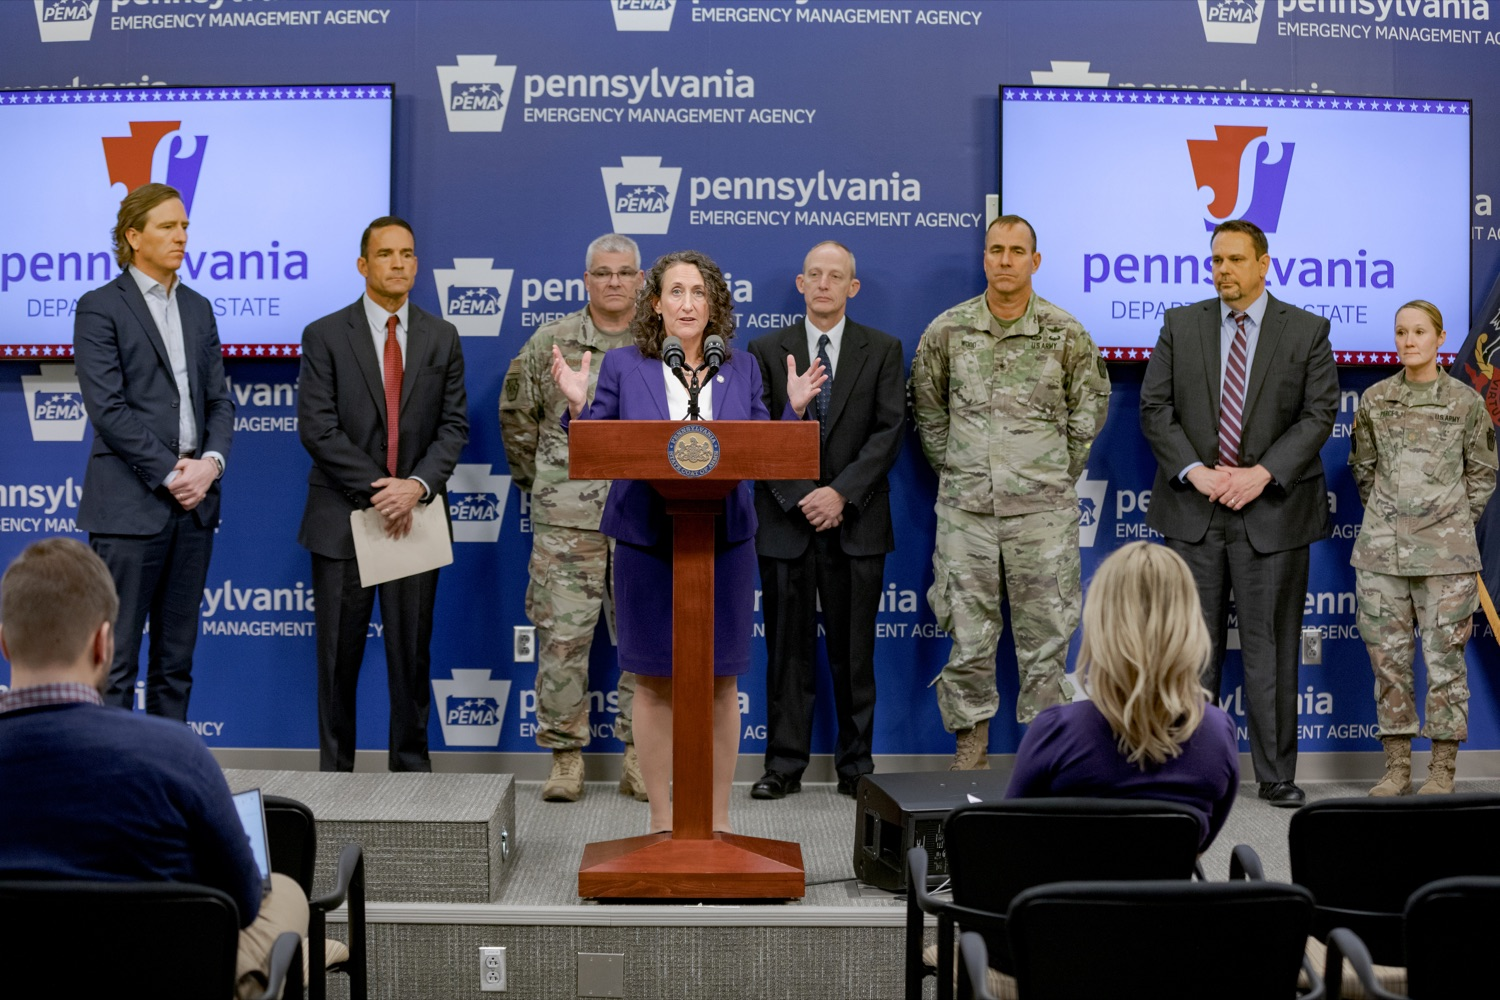 "<a href=""http://filesource.abacast.com/commonwealthofpa/photo/17558_DOS_Election_Update_NK_002.JPG"" target=""_blank"">⇣ Download Photo<br></a>Acting Secretary of State Kathy Boockvar speaks during a press conference assuring Pennsylvanians that a sophisticated network of federal, state and local partnerships is safeguarding todays municipal election, inside PEMA headquarters on Tuesday, November 5, 2019."